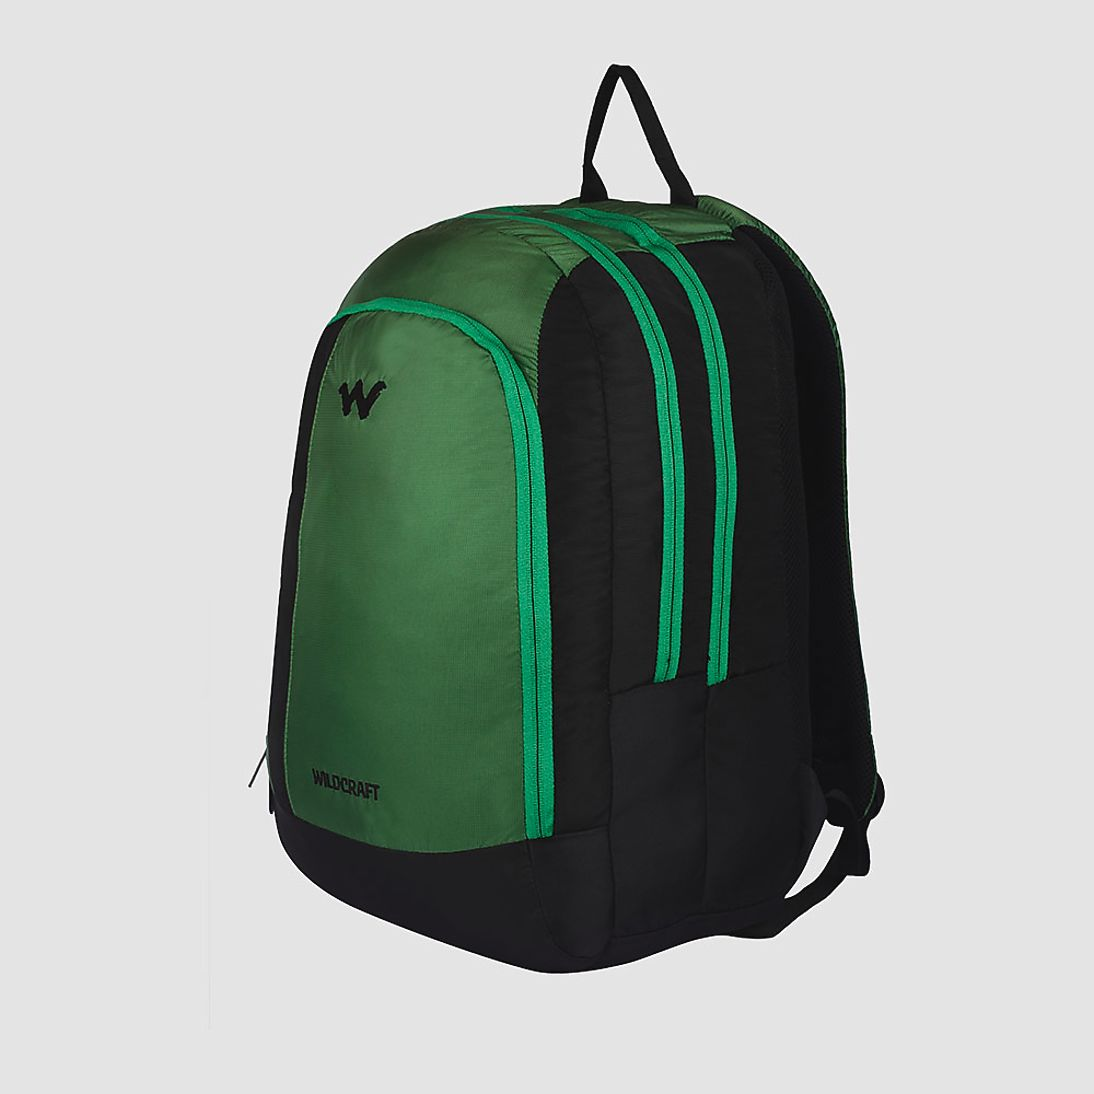 Wildcraft Roh Green Laptop Bag